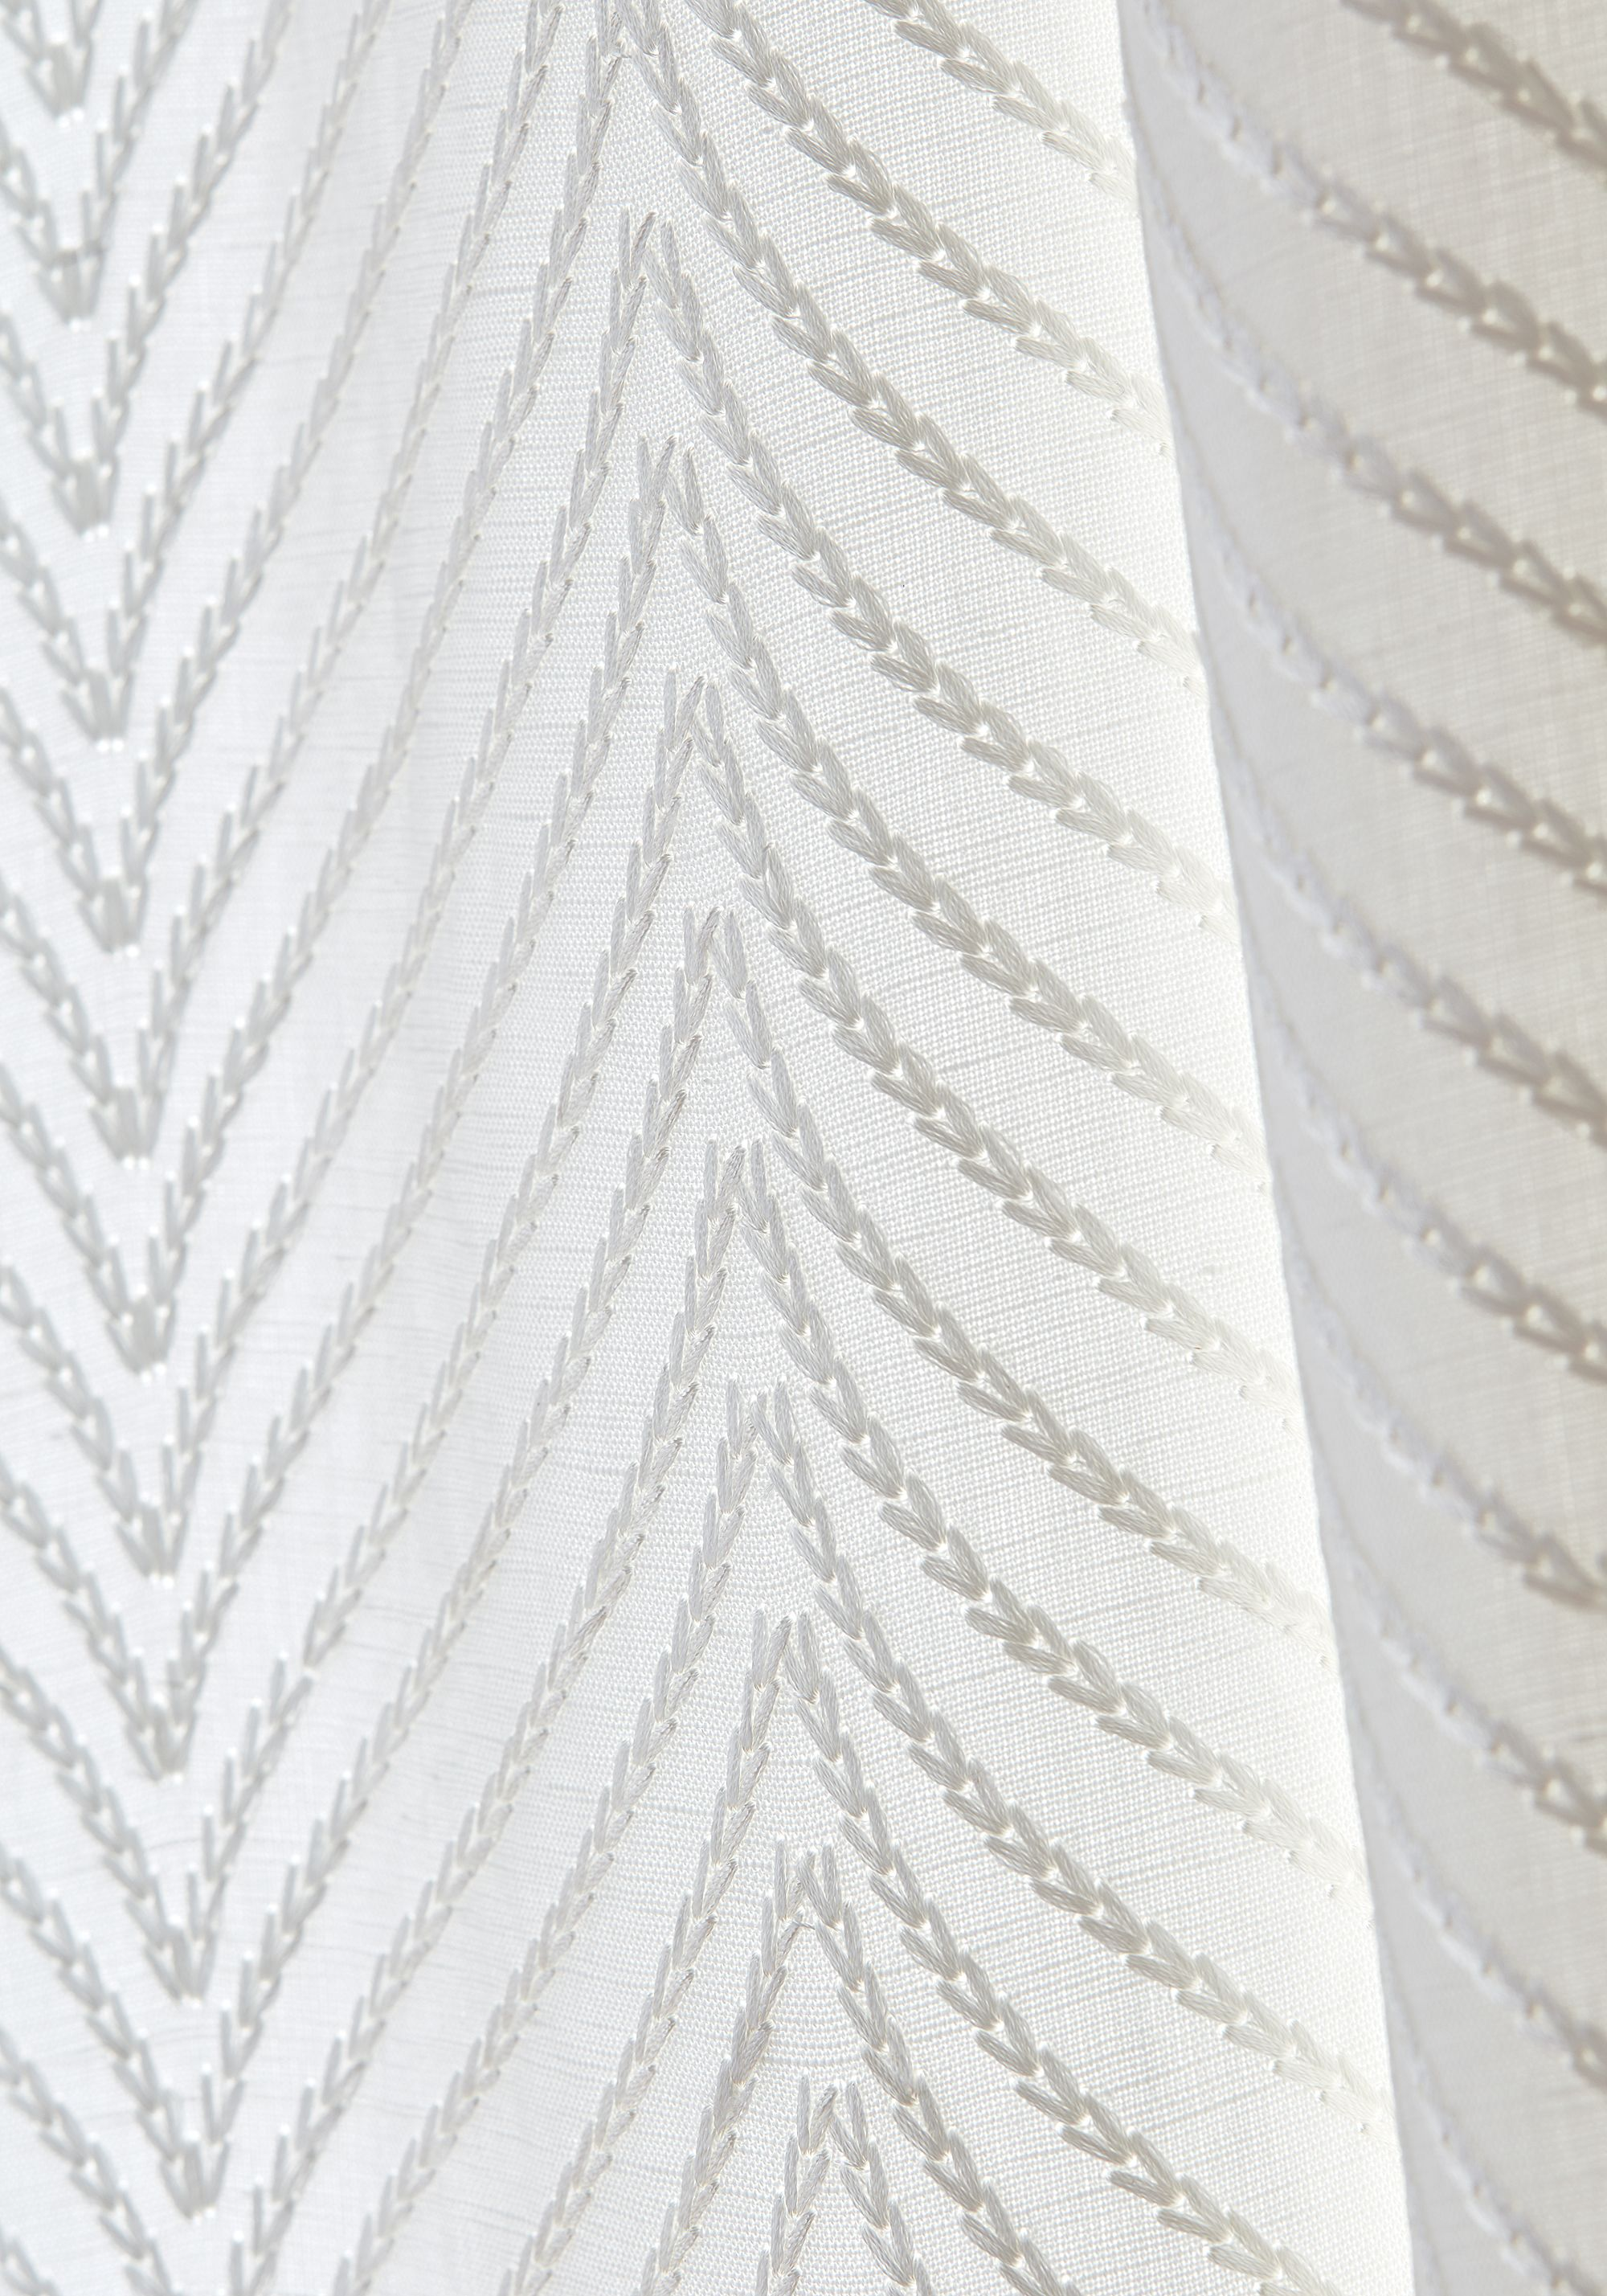 Clayton Herringbone Fabric From Dynasty Collection With